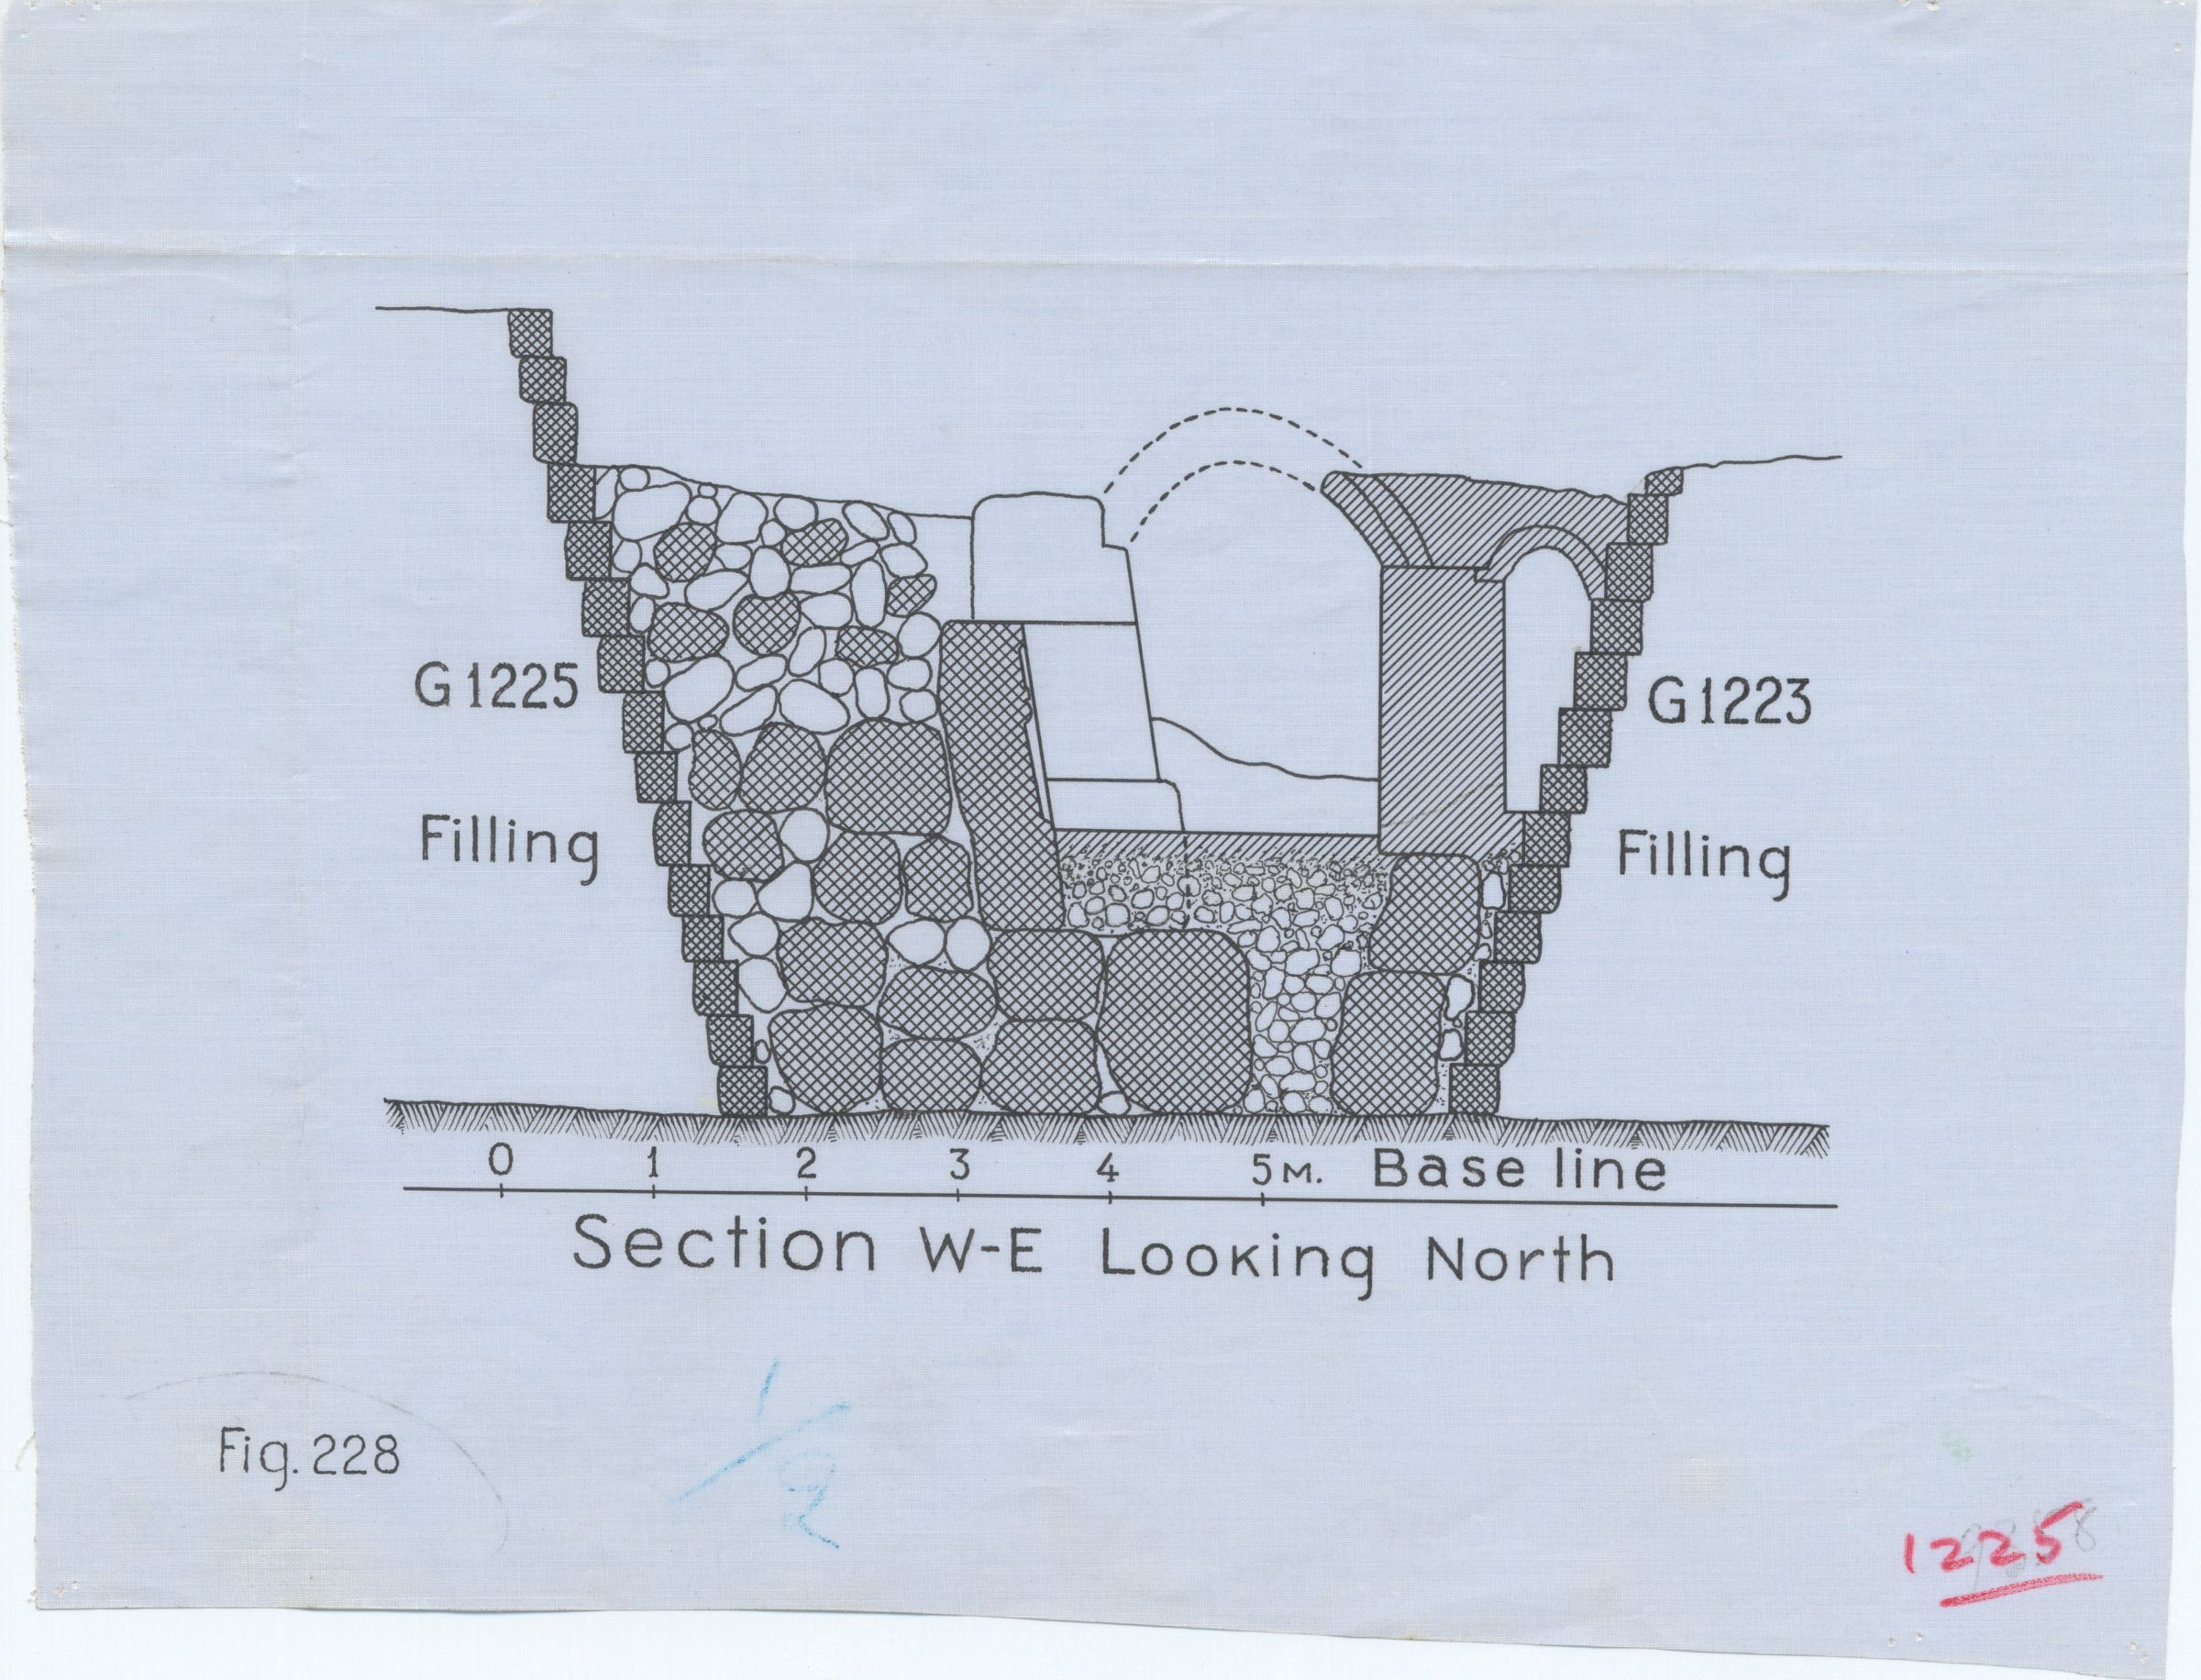 Maps and plans: Section between G 1223 and G 1225, looking north (reconstructed vault of G 1225-Annex chapel)